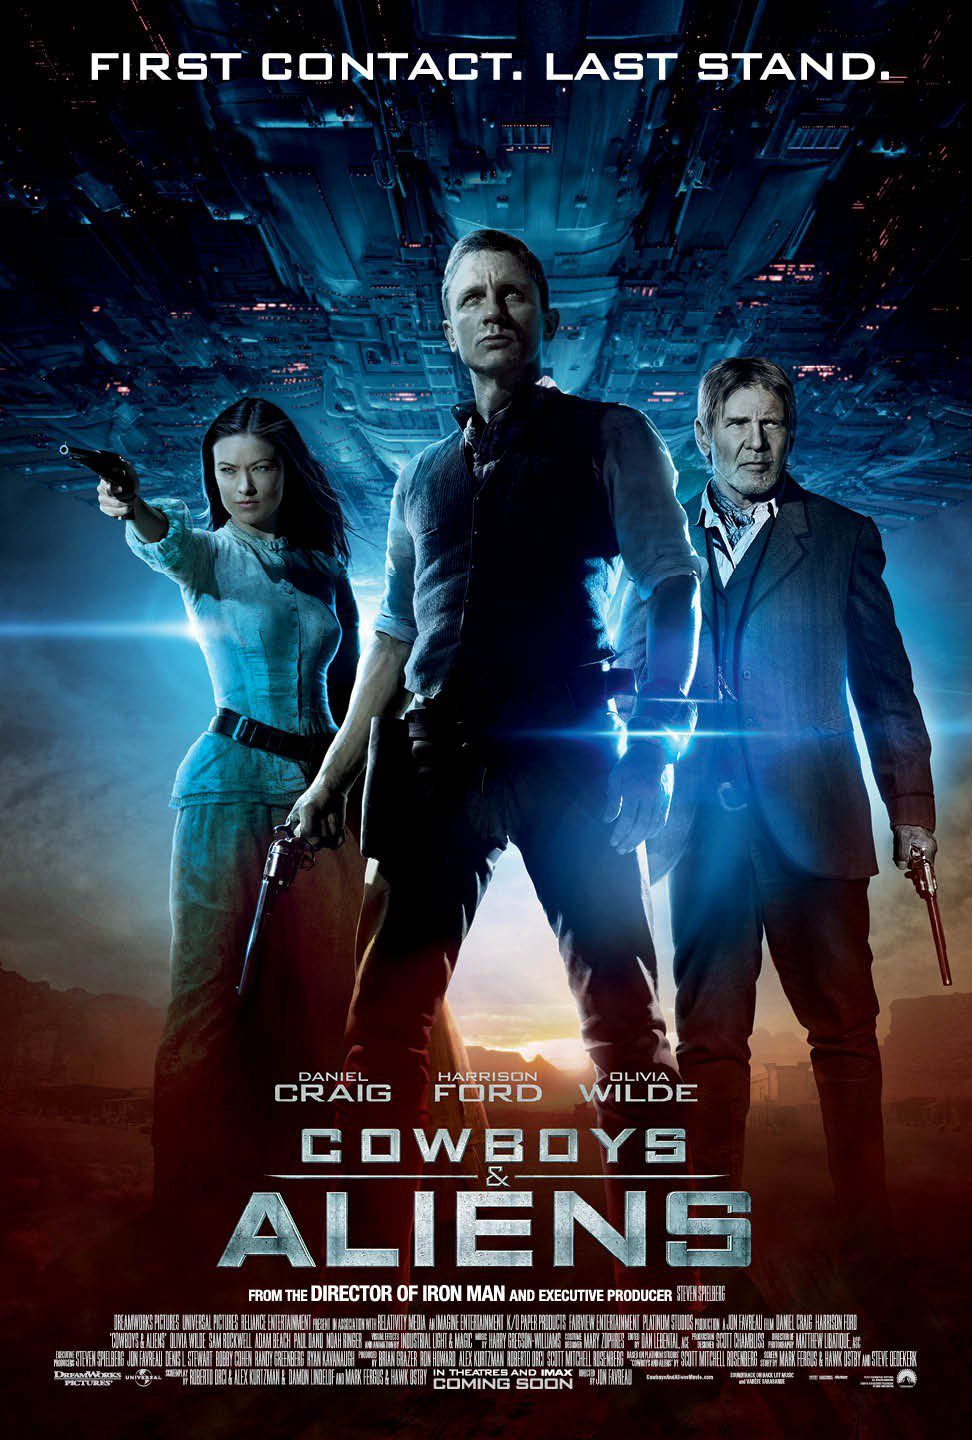 Cowboys & Aliens - Technical Director - Lighting & Effects @ Industrial Light & Magic SF